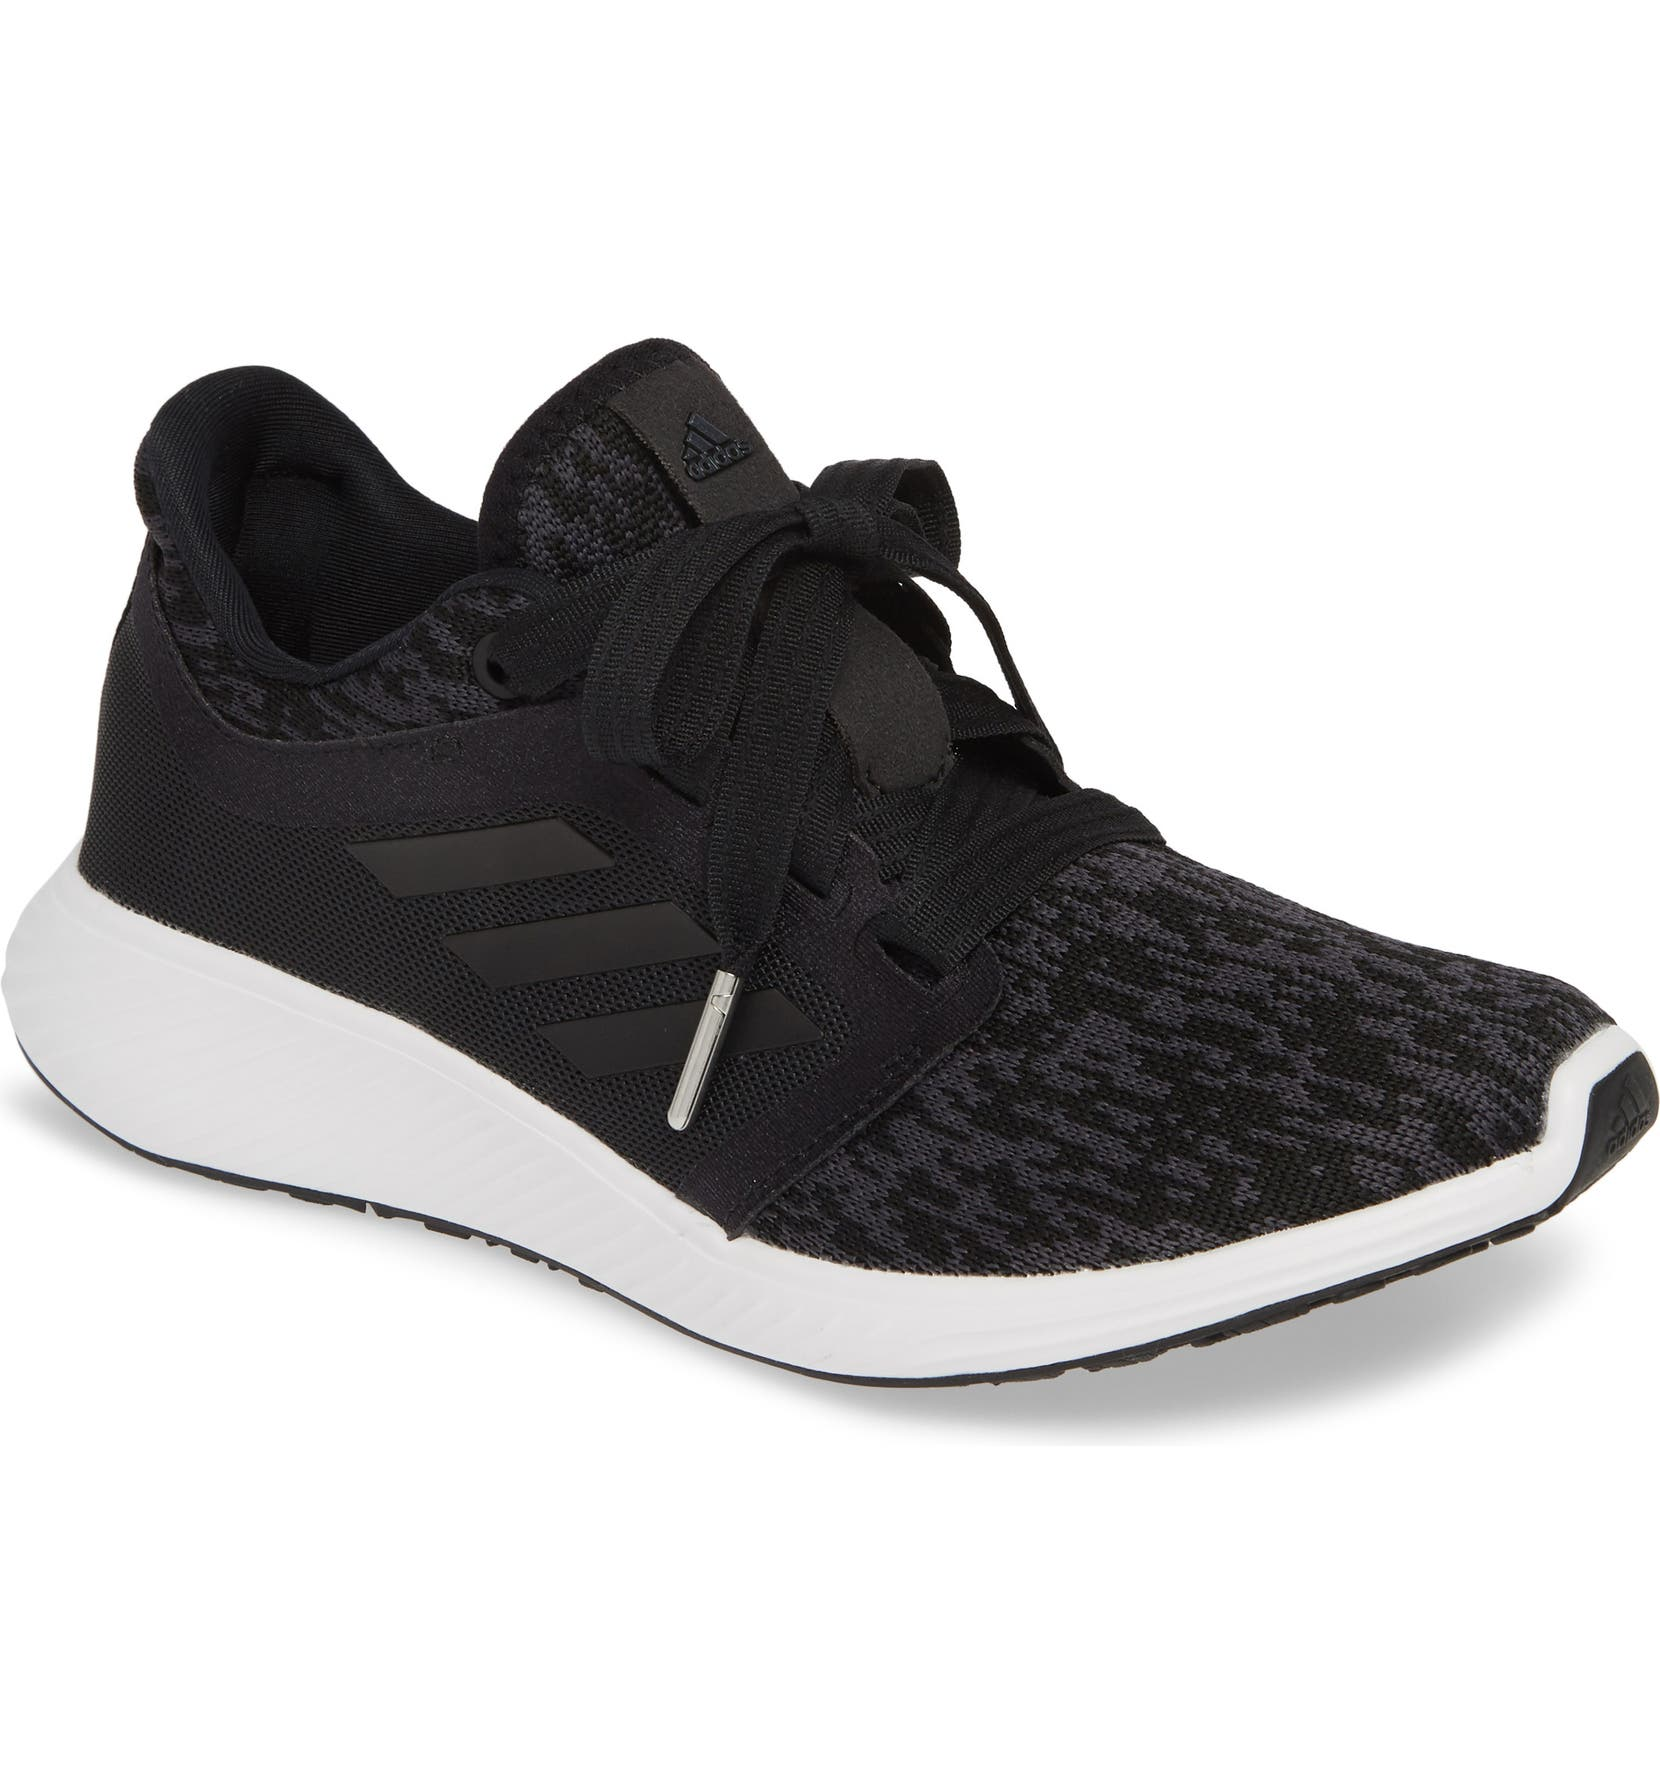 adidas Edge Lux 3 Running Shoe (Women)  afb915cfd